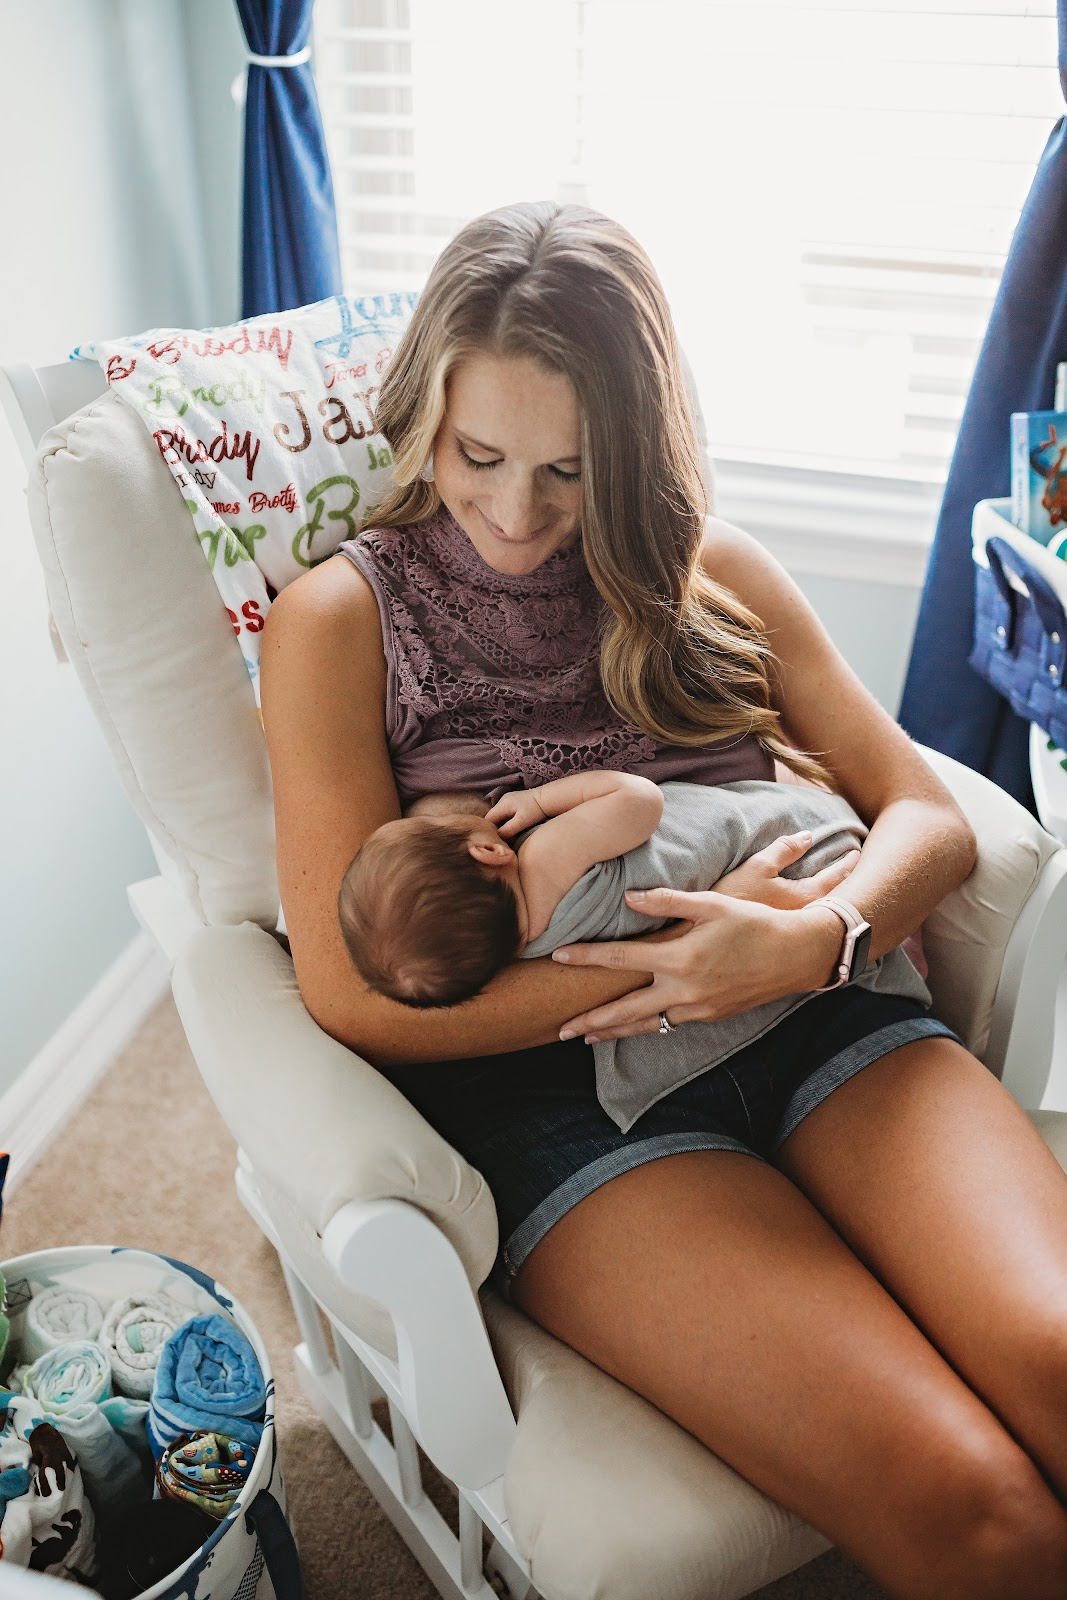 The benefits of breastfeeding are amazing and provide both the mother and baby with countless positive experiences during the first year of life.